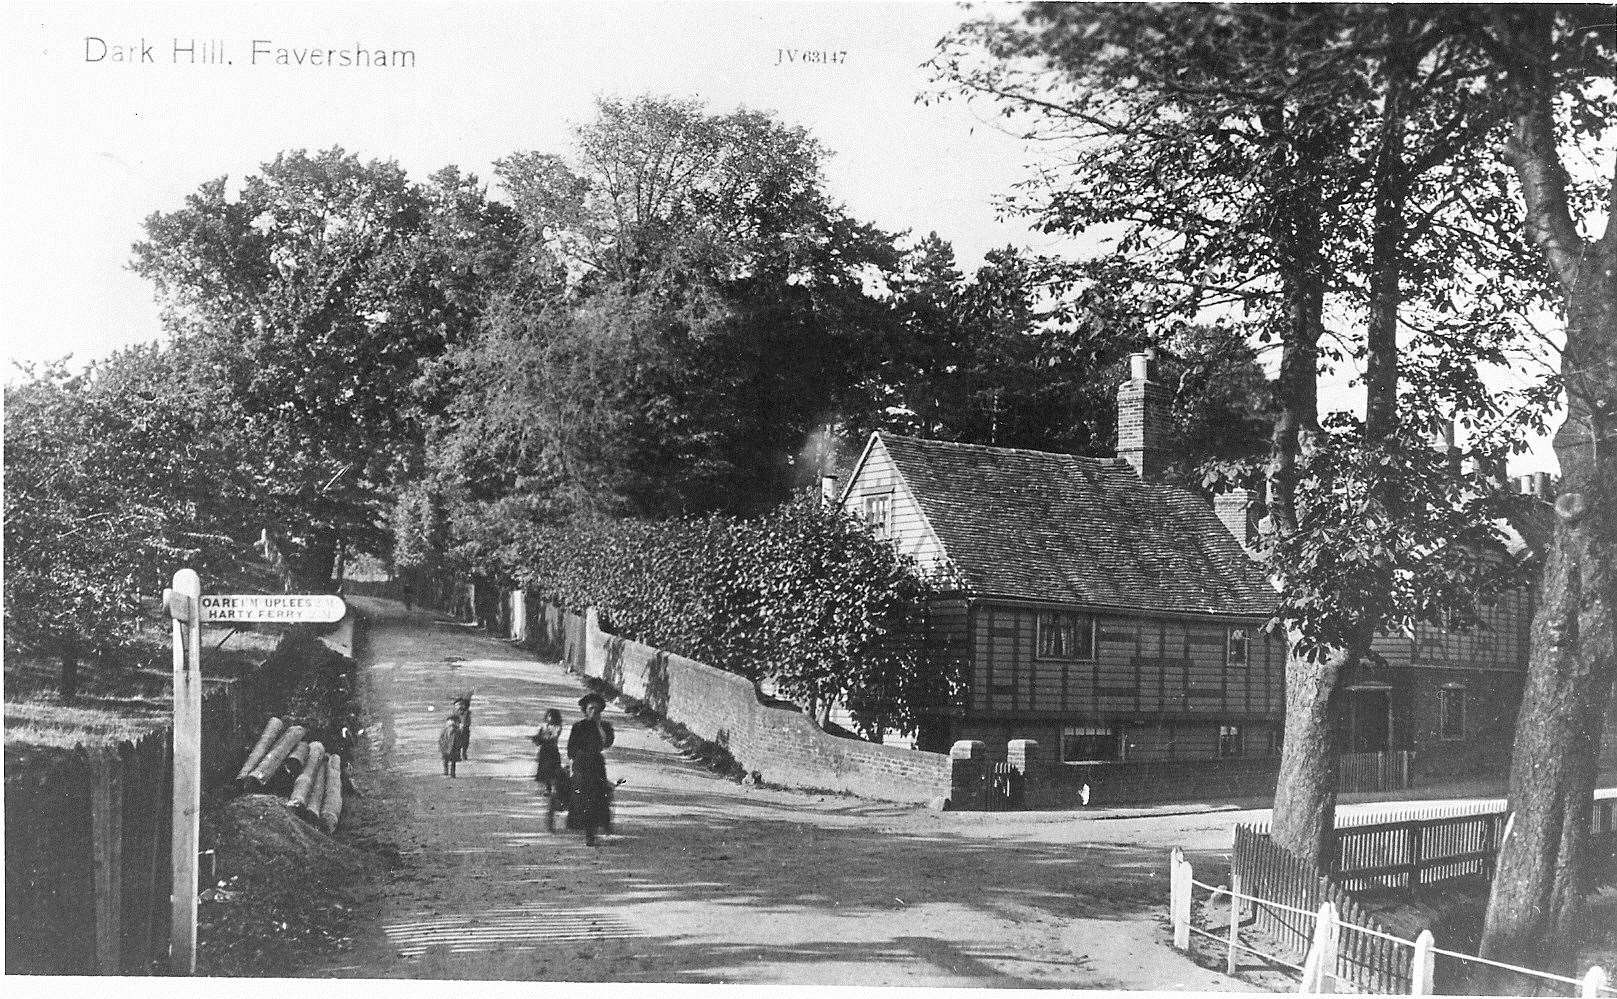 Dark Hill, Faversham in 1912